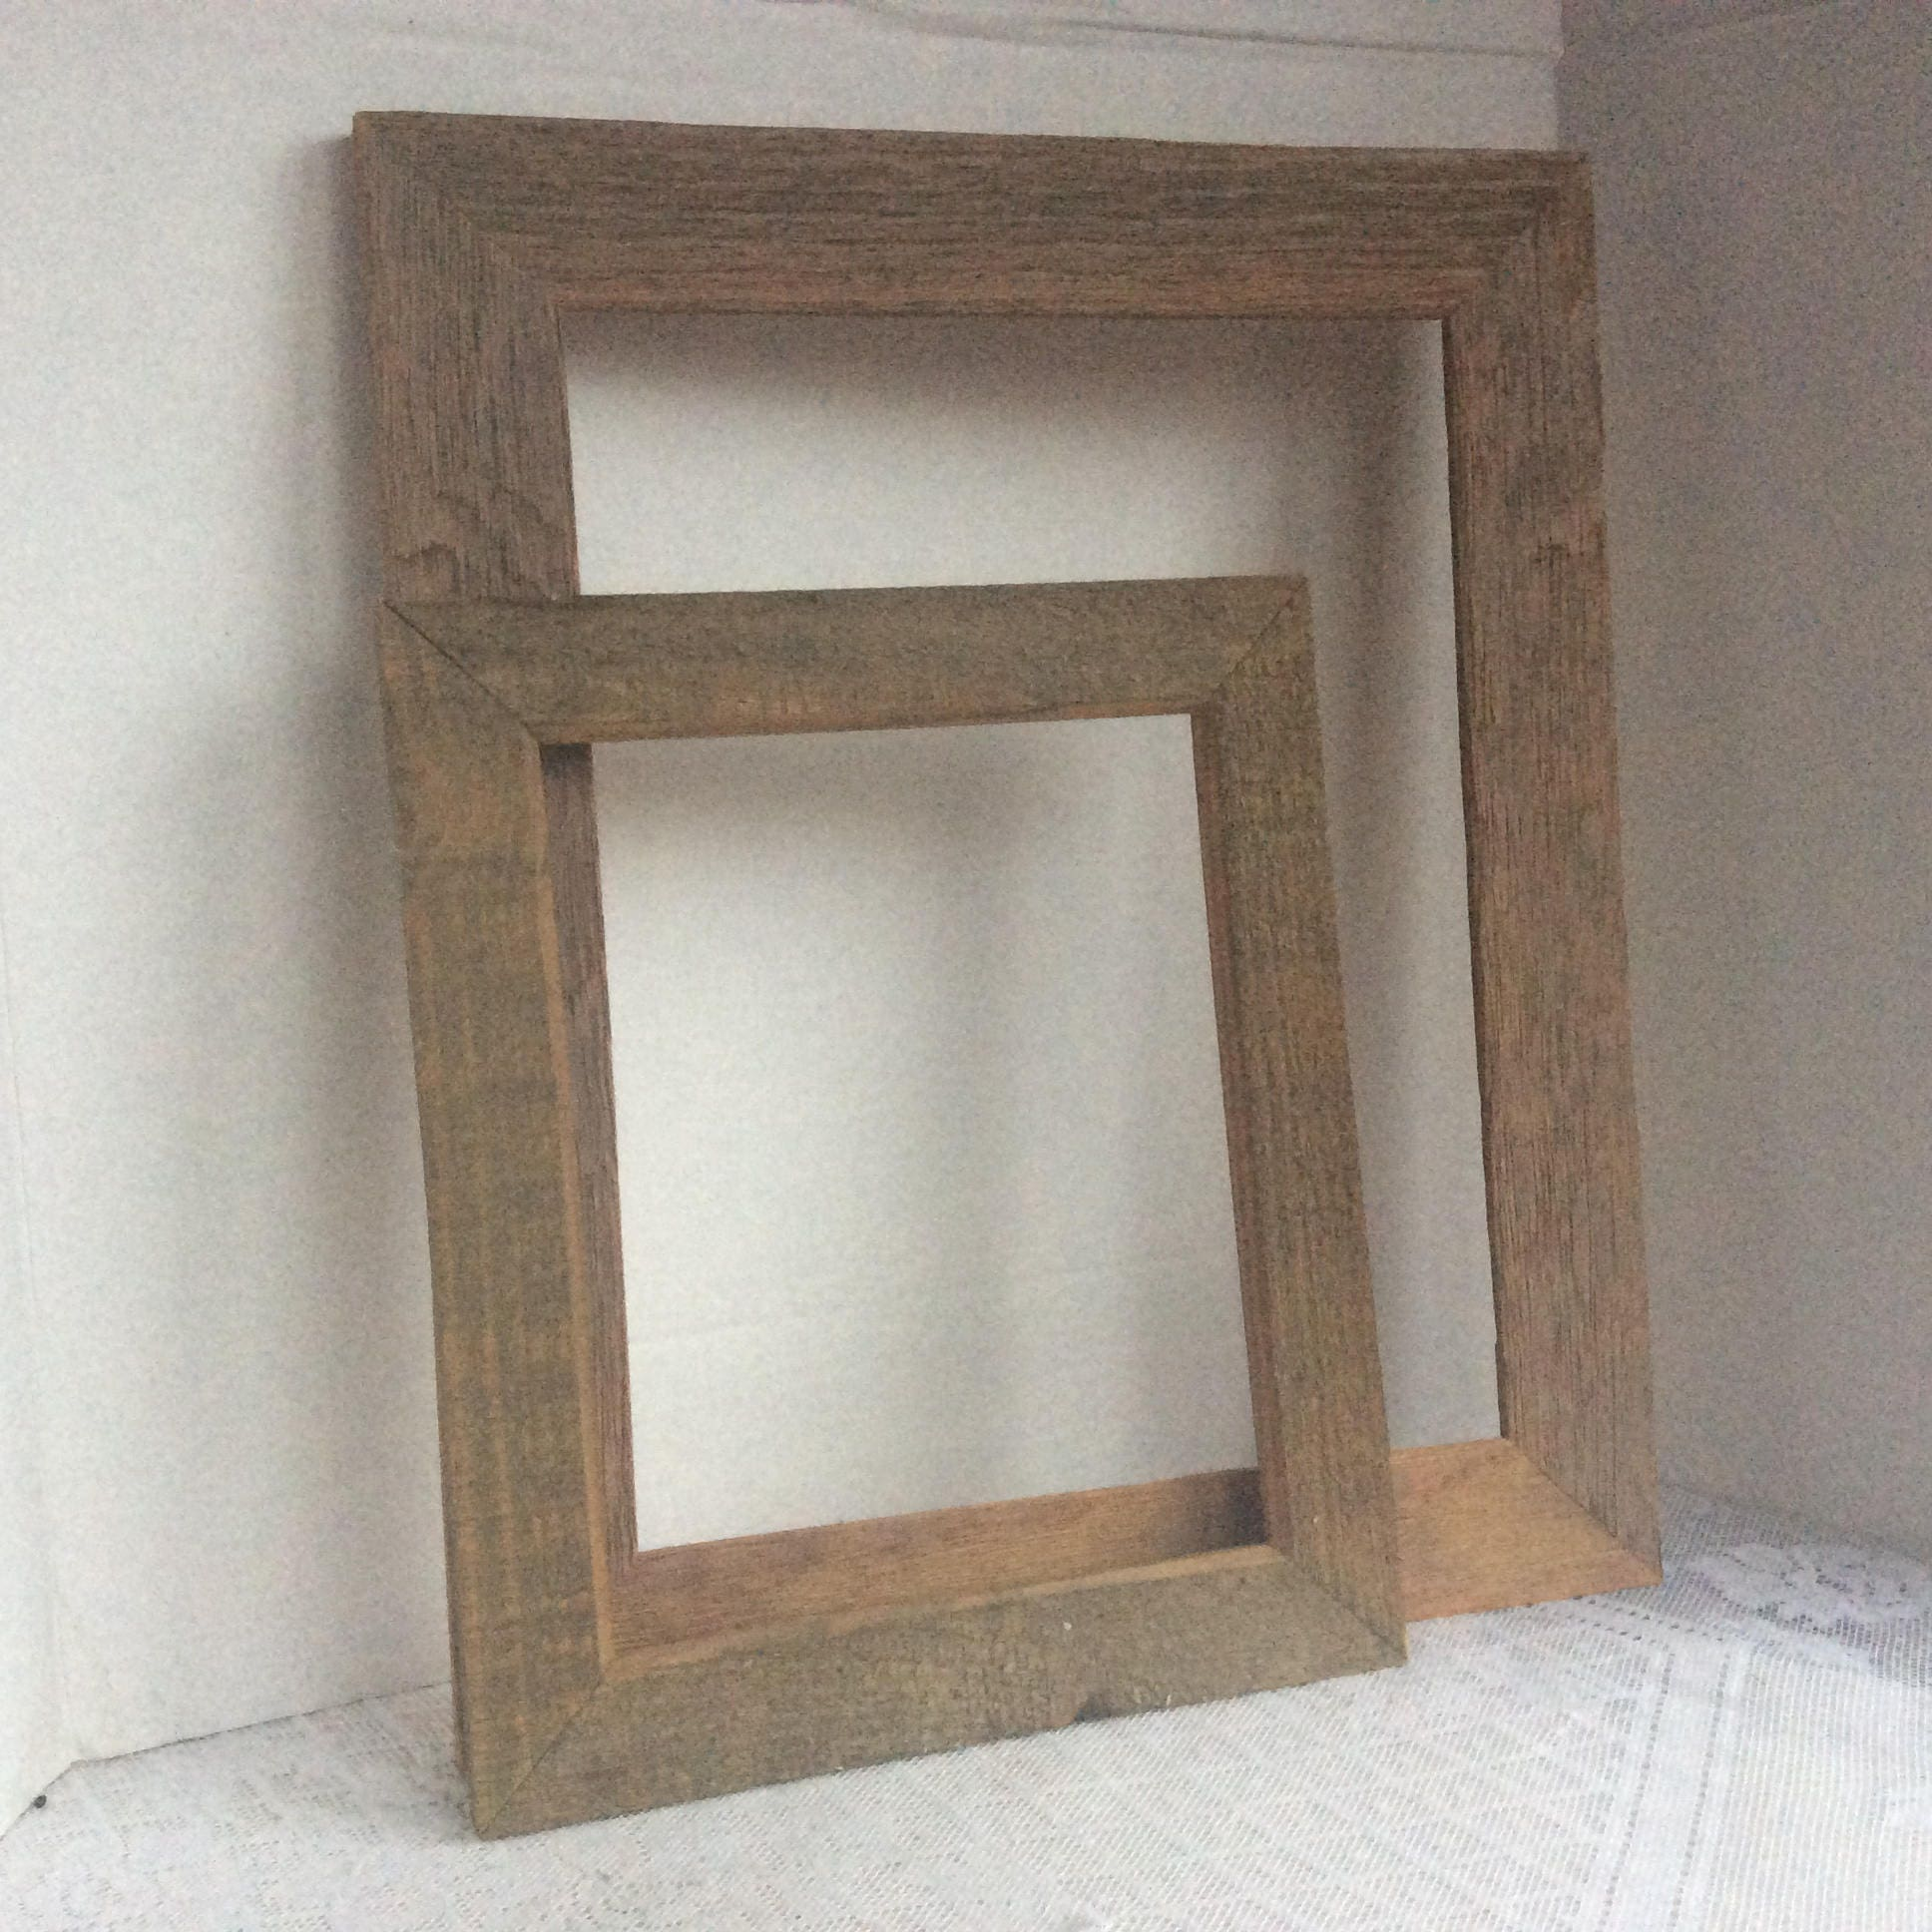 Picture Frames / Vintage Wood Frames / Rustic Rectangle Wooden ...